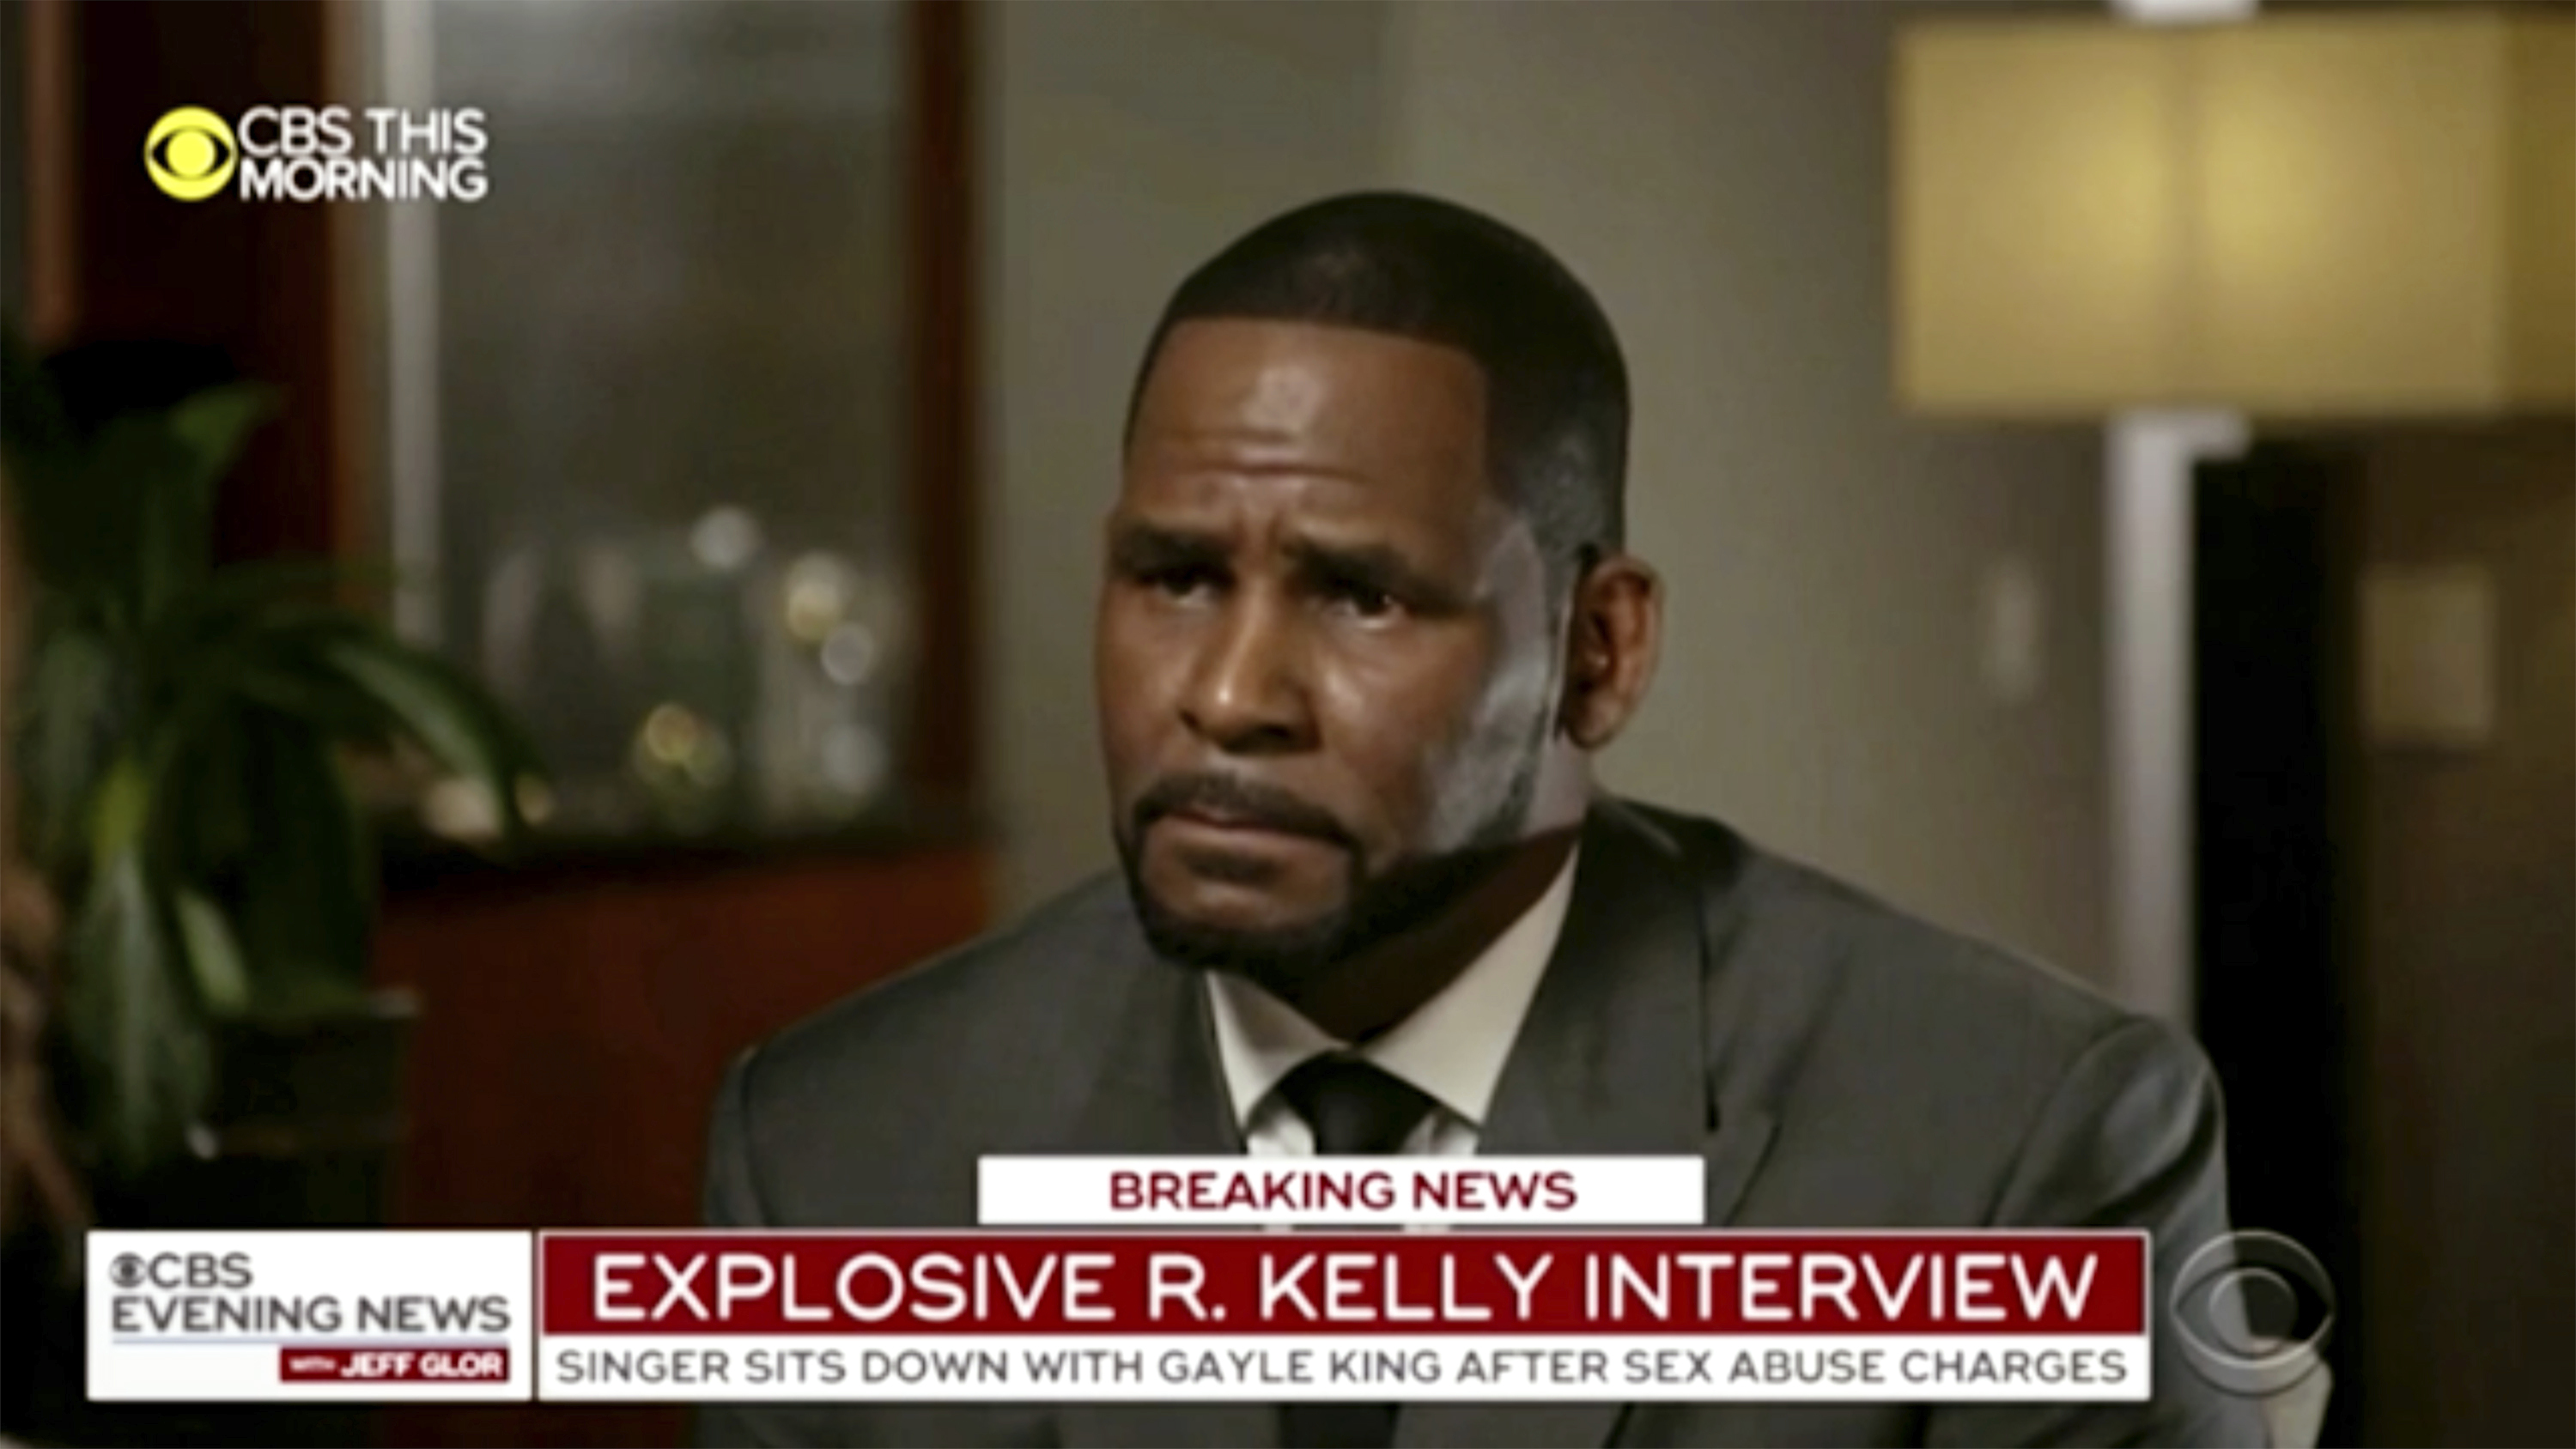 "This image provided by CBS shows R. Kelly being interviewed by Gayle King on ""CBS This Morning"" Wednesday, March 6, 2019 in Chicago. The R&B singer gave his first interview since being charged last month with sexually abusing four females dating back to 1998, including three underage girls. Kelly has pleaded not guilty to 10 counts of aggravated sexual abuse. (CBS via AP)"